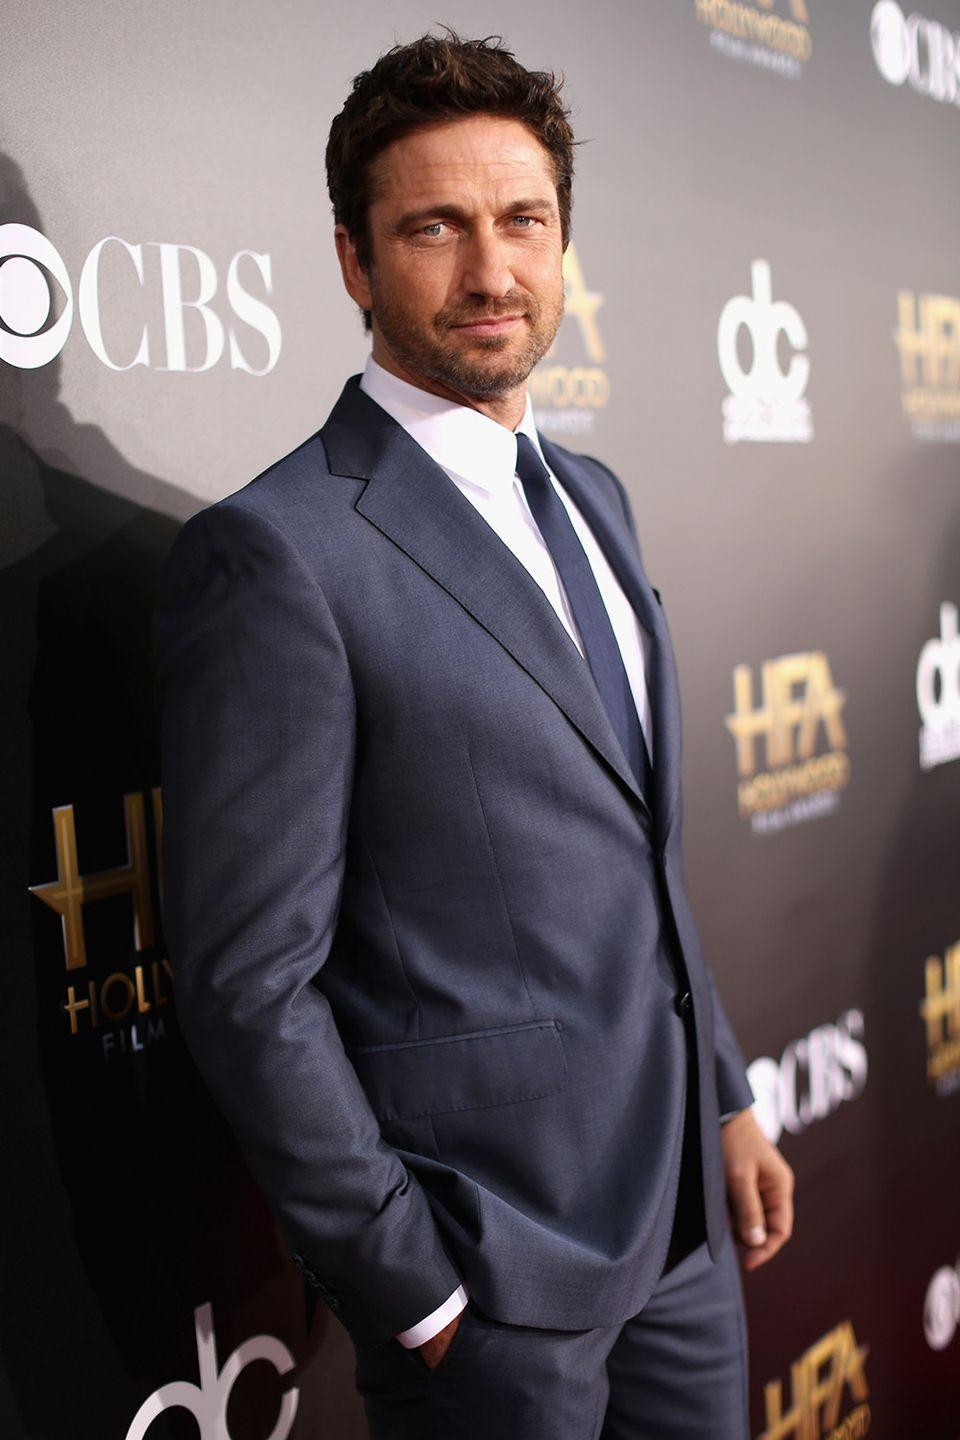 """<p>The Scottish actor struggled for years with addictions to both drugs and alcohol before seeking treatment. Now 20 years later, Butler is still embracing the sober life. </p><p><em>H/T: <a href=""""http://www.usmagazine.com/celebrity-news/news/gerard-butler-finally-opens-up-about-rehab-i-havent-had-a-drink-in-15-years-20121910"""" rel=""""nofollow noopener"""" target=""""_blank"""" data-ylk=""""slk:Us Weekly"""" class=""""link rapid-noclick-resp"""">Us Weekly</a></em></p>"""